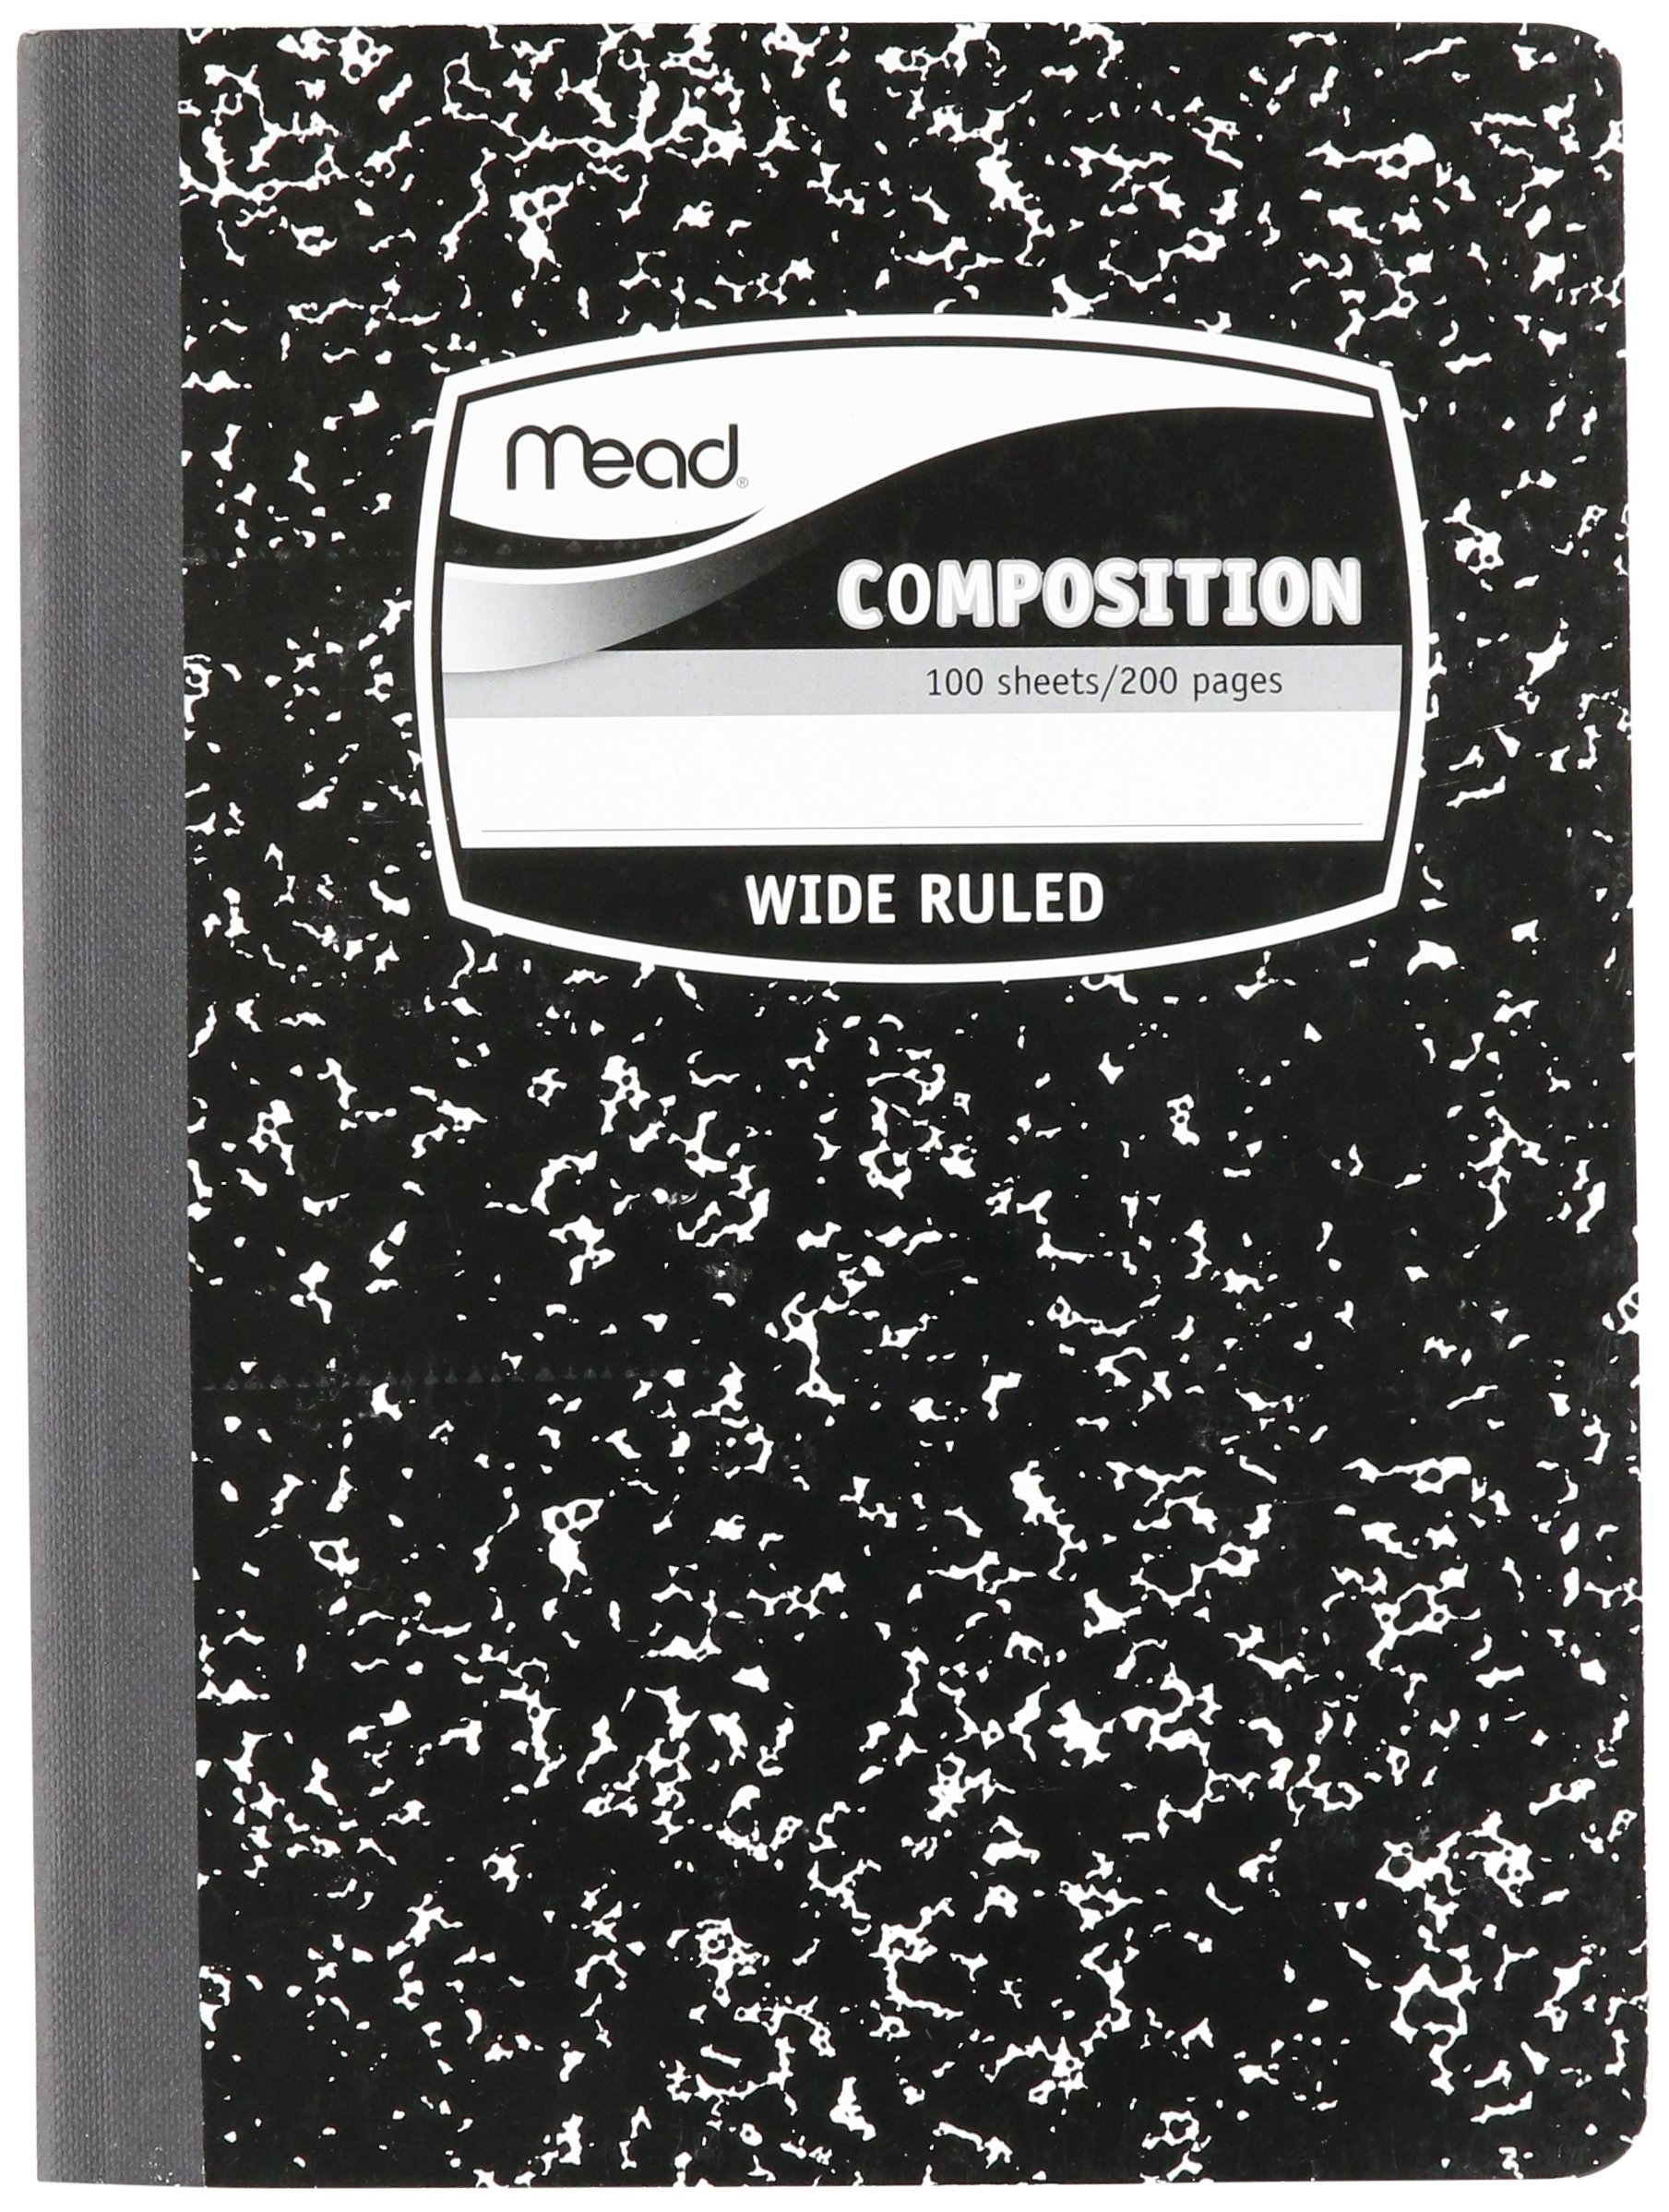 """MEA09910 - Sewn Black Marble Cover Composition Book with Wide Rule 11/32, 100 Sheet, Media Size: 7.5"""" x 9.75"""""""